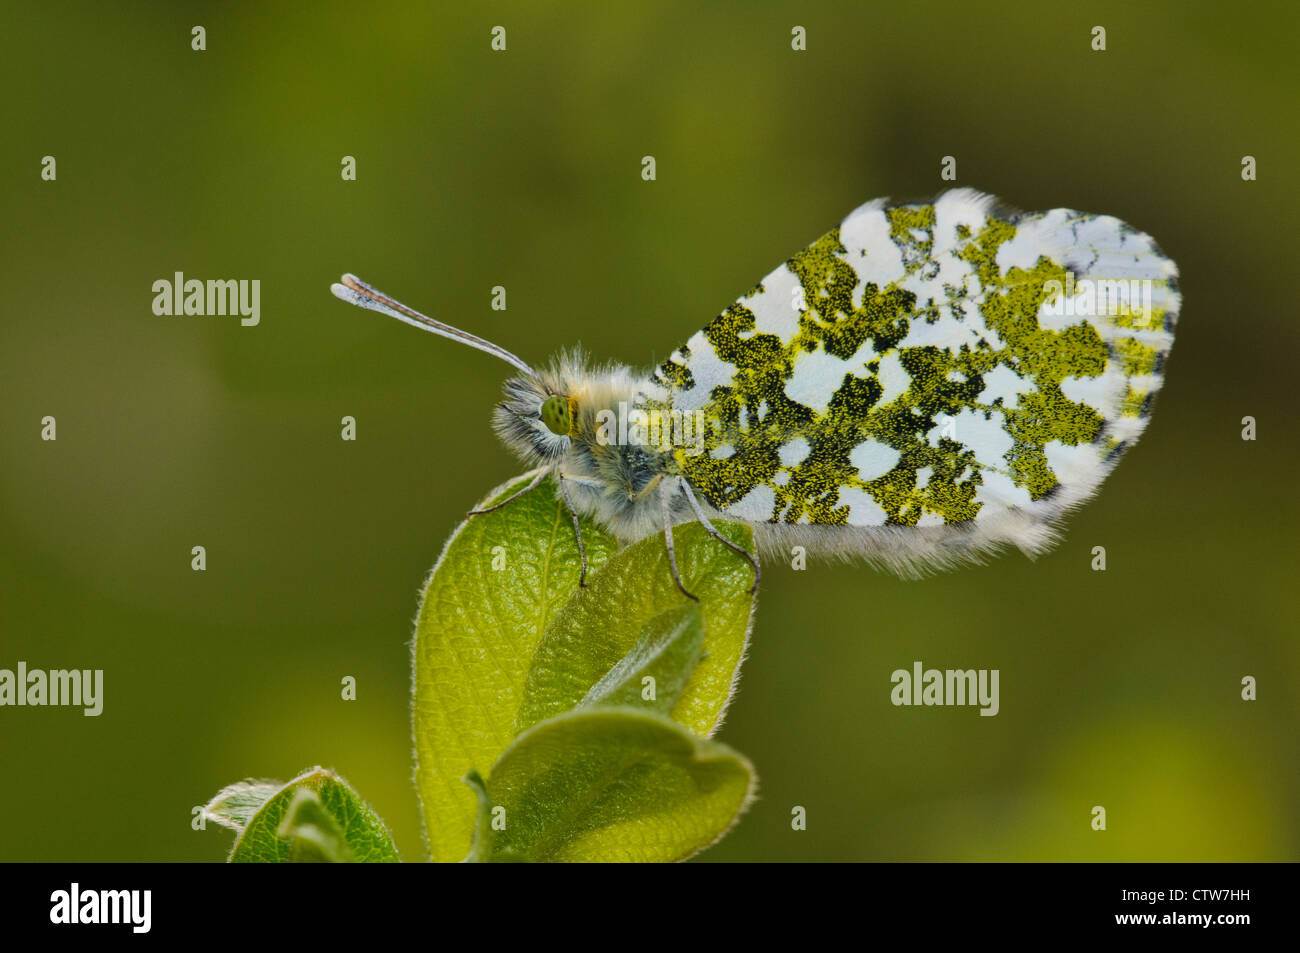 An adult female orange tip butterfly (Anthocharis cardamines) perched on fresh new growth at RSPB Leighton Moss, Stock Photo